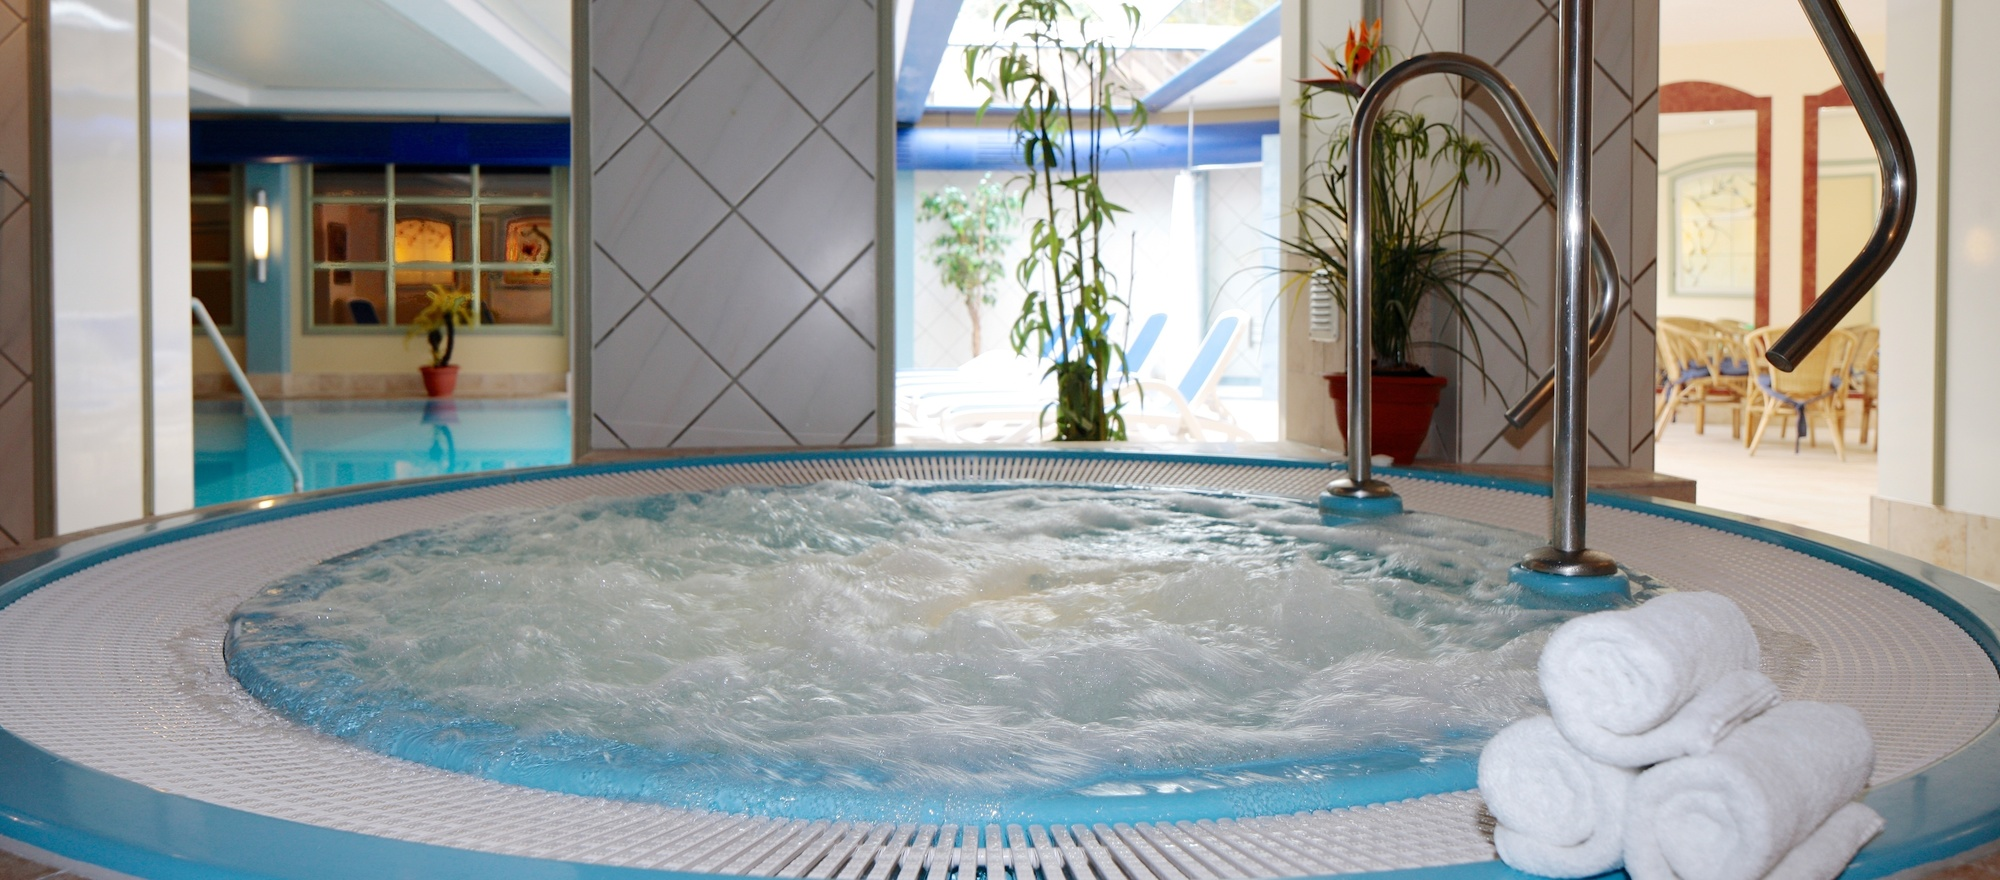 600 sqm sauna and wellness area for the perfect relaxation in the 4 star hotel Ringhotel Fährhaus in Bad Bevensen